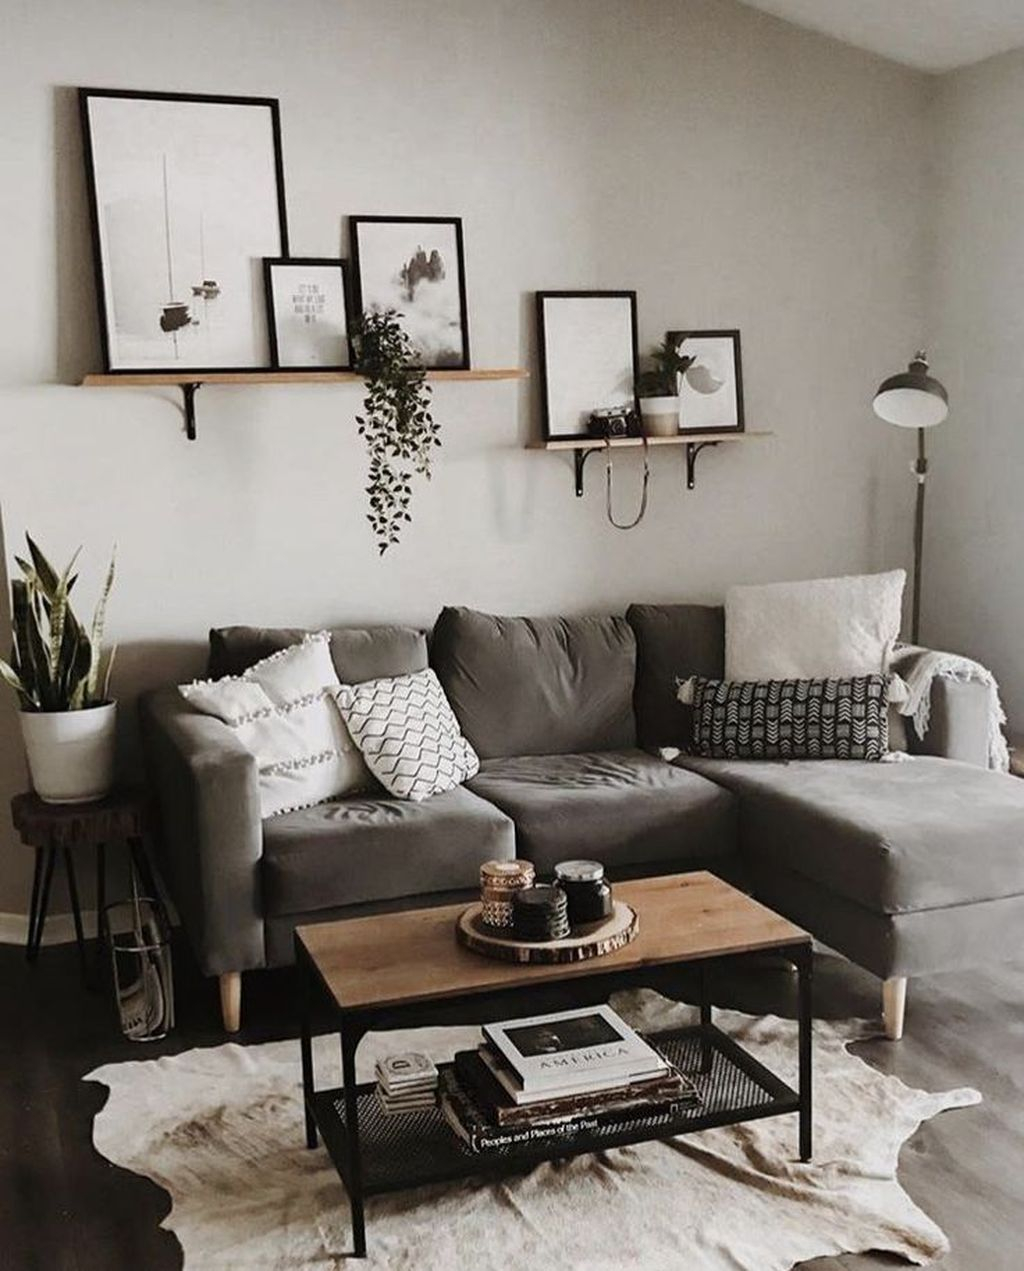 Rustic Living Room Design Ideas That You Should Try 19